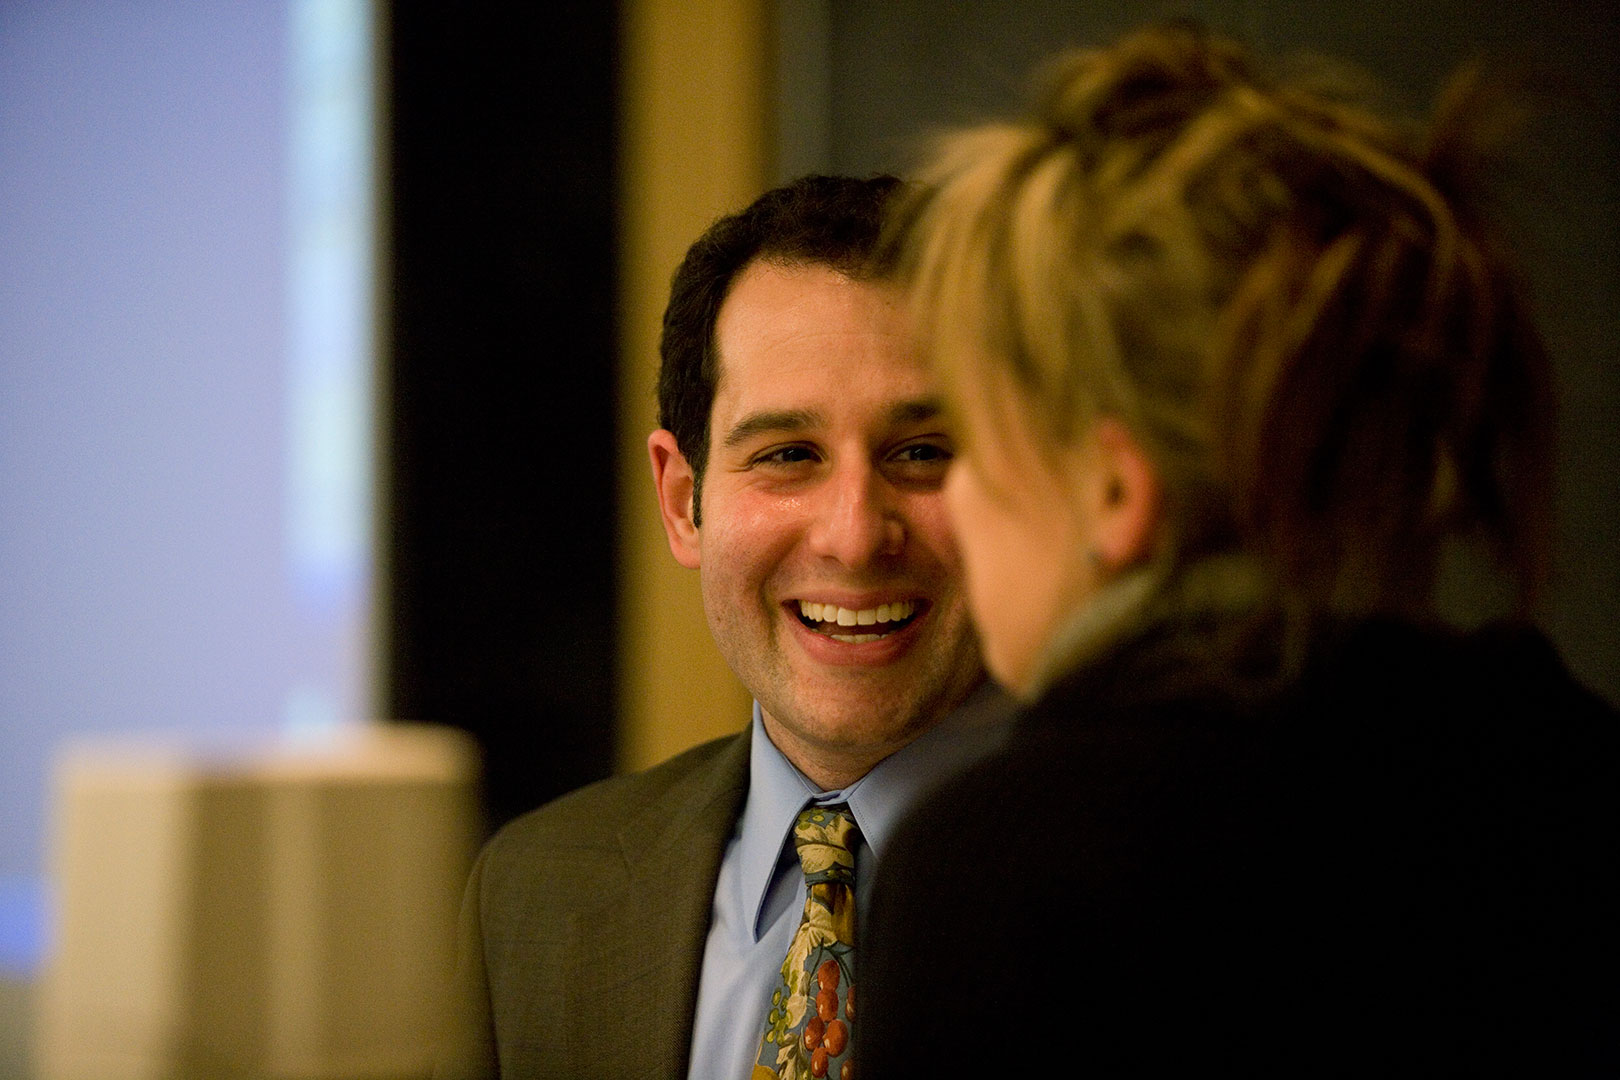 Jonathan Adler '00, seen here talking with Kati Vecsey of the theater department during his lecture at Bates in 2008.